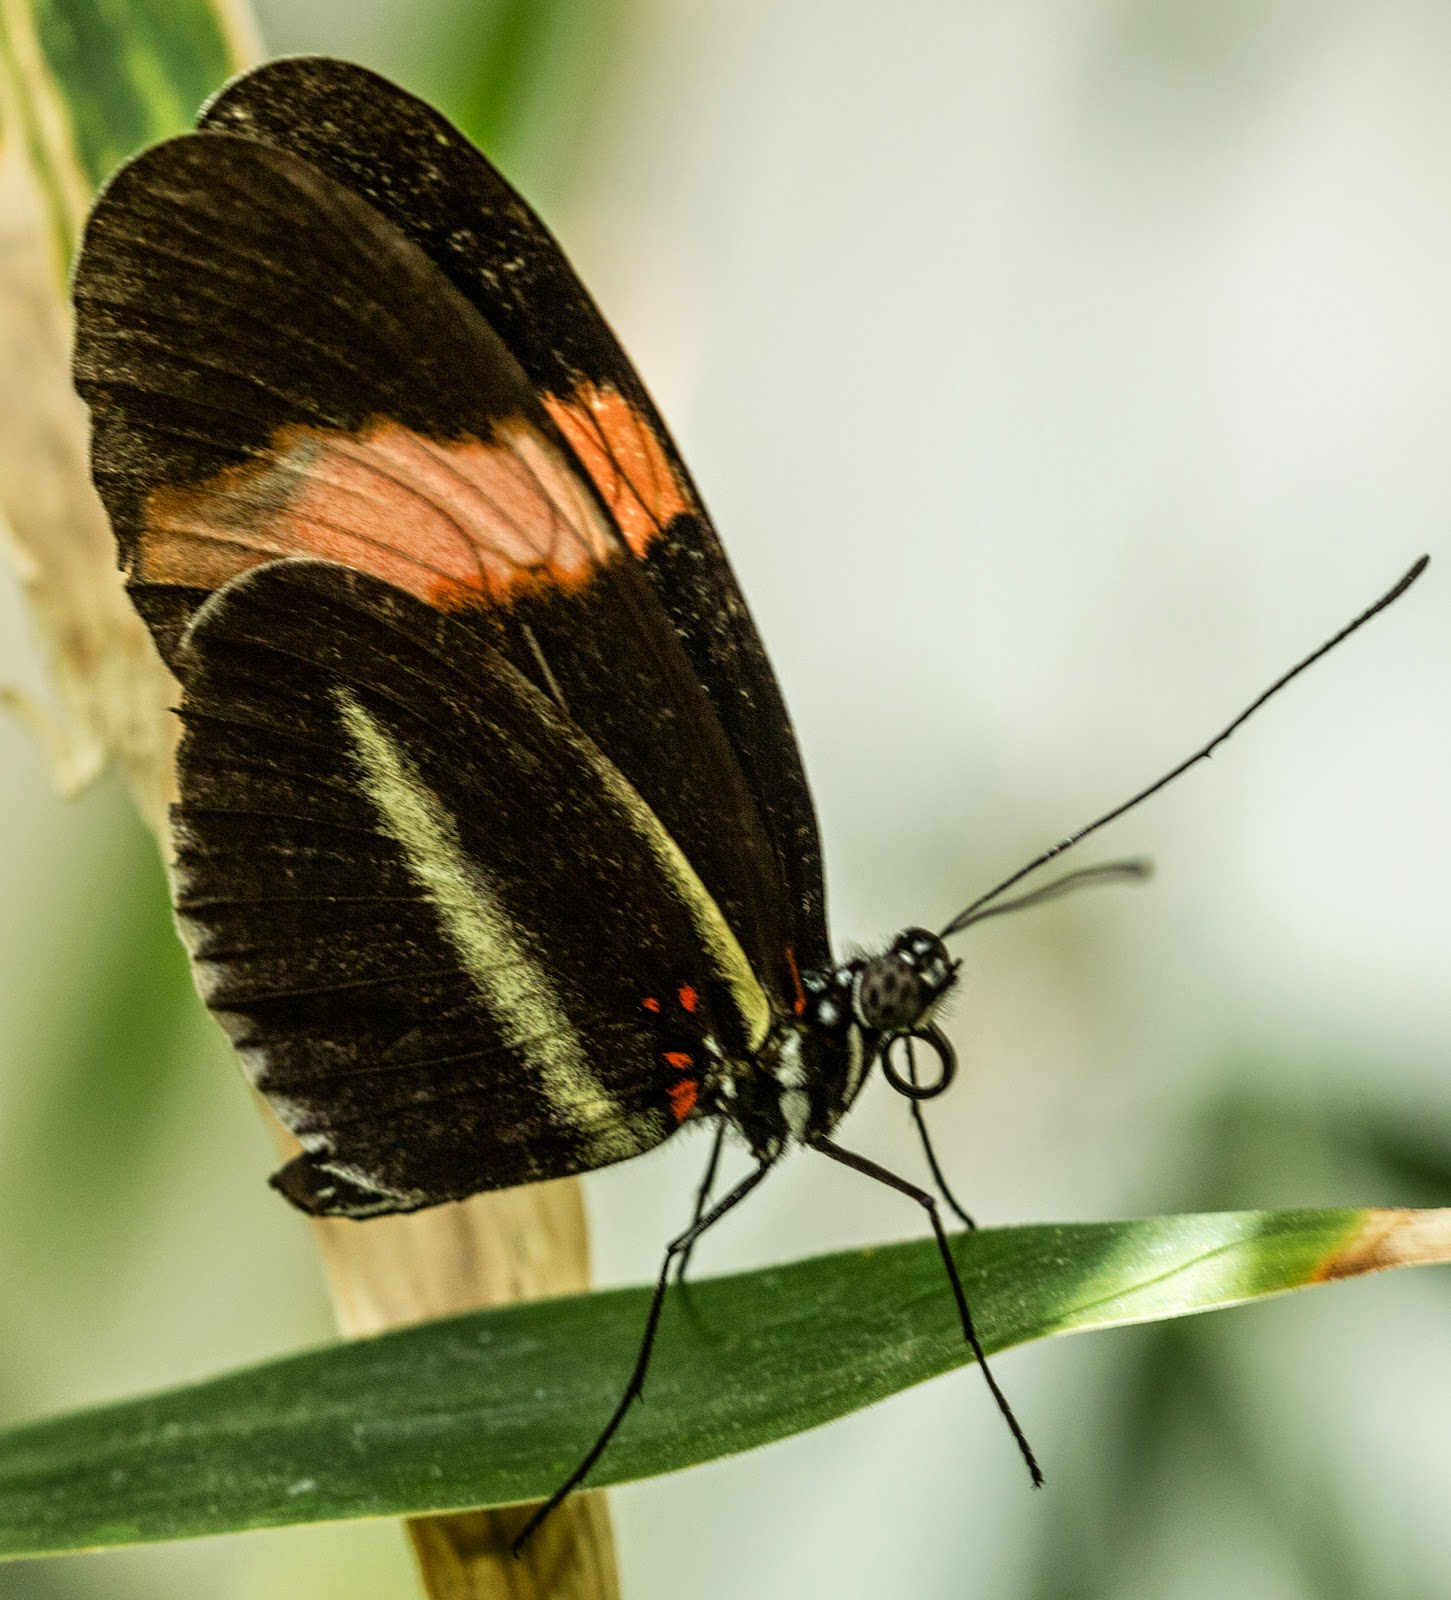 James gordon patterson photography butterfly wonderland i photographed in natural shaded light with a canon 5d mark iii and a canon 100mm macro lens hand held as tripods would be hard to use unless you had the buycottarizona